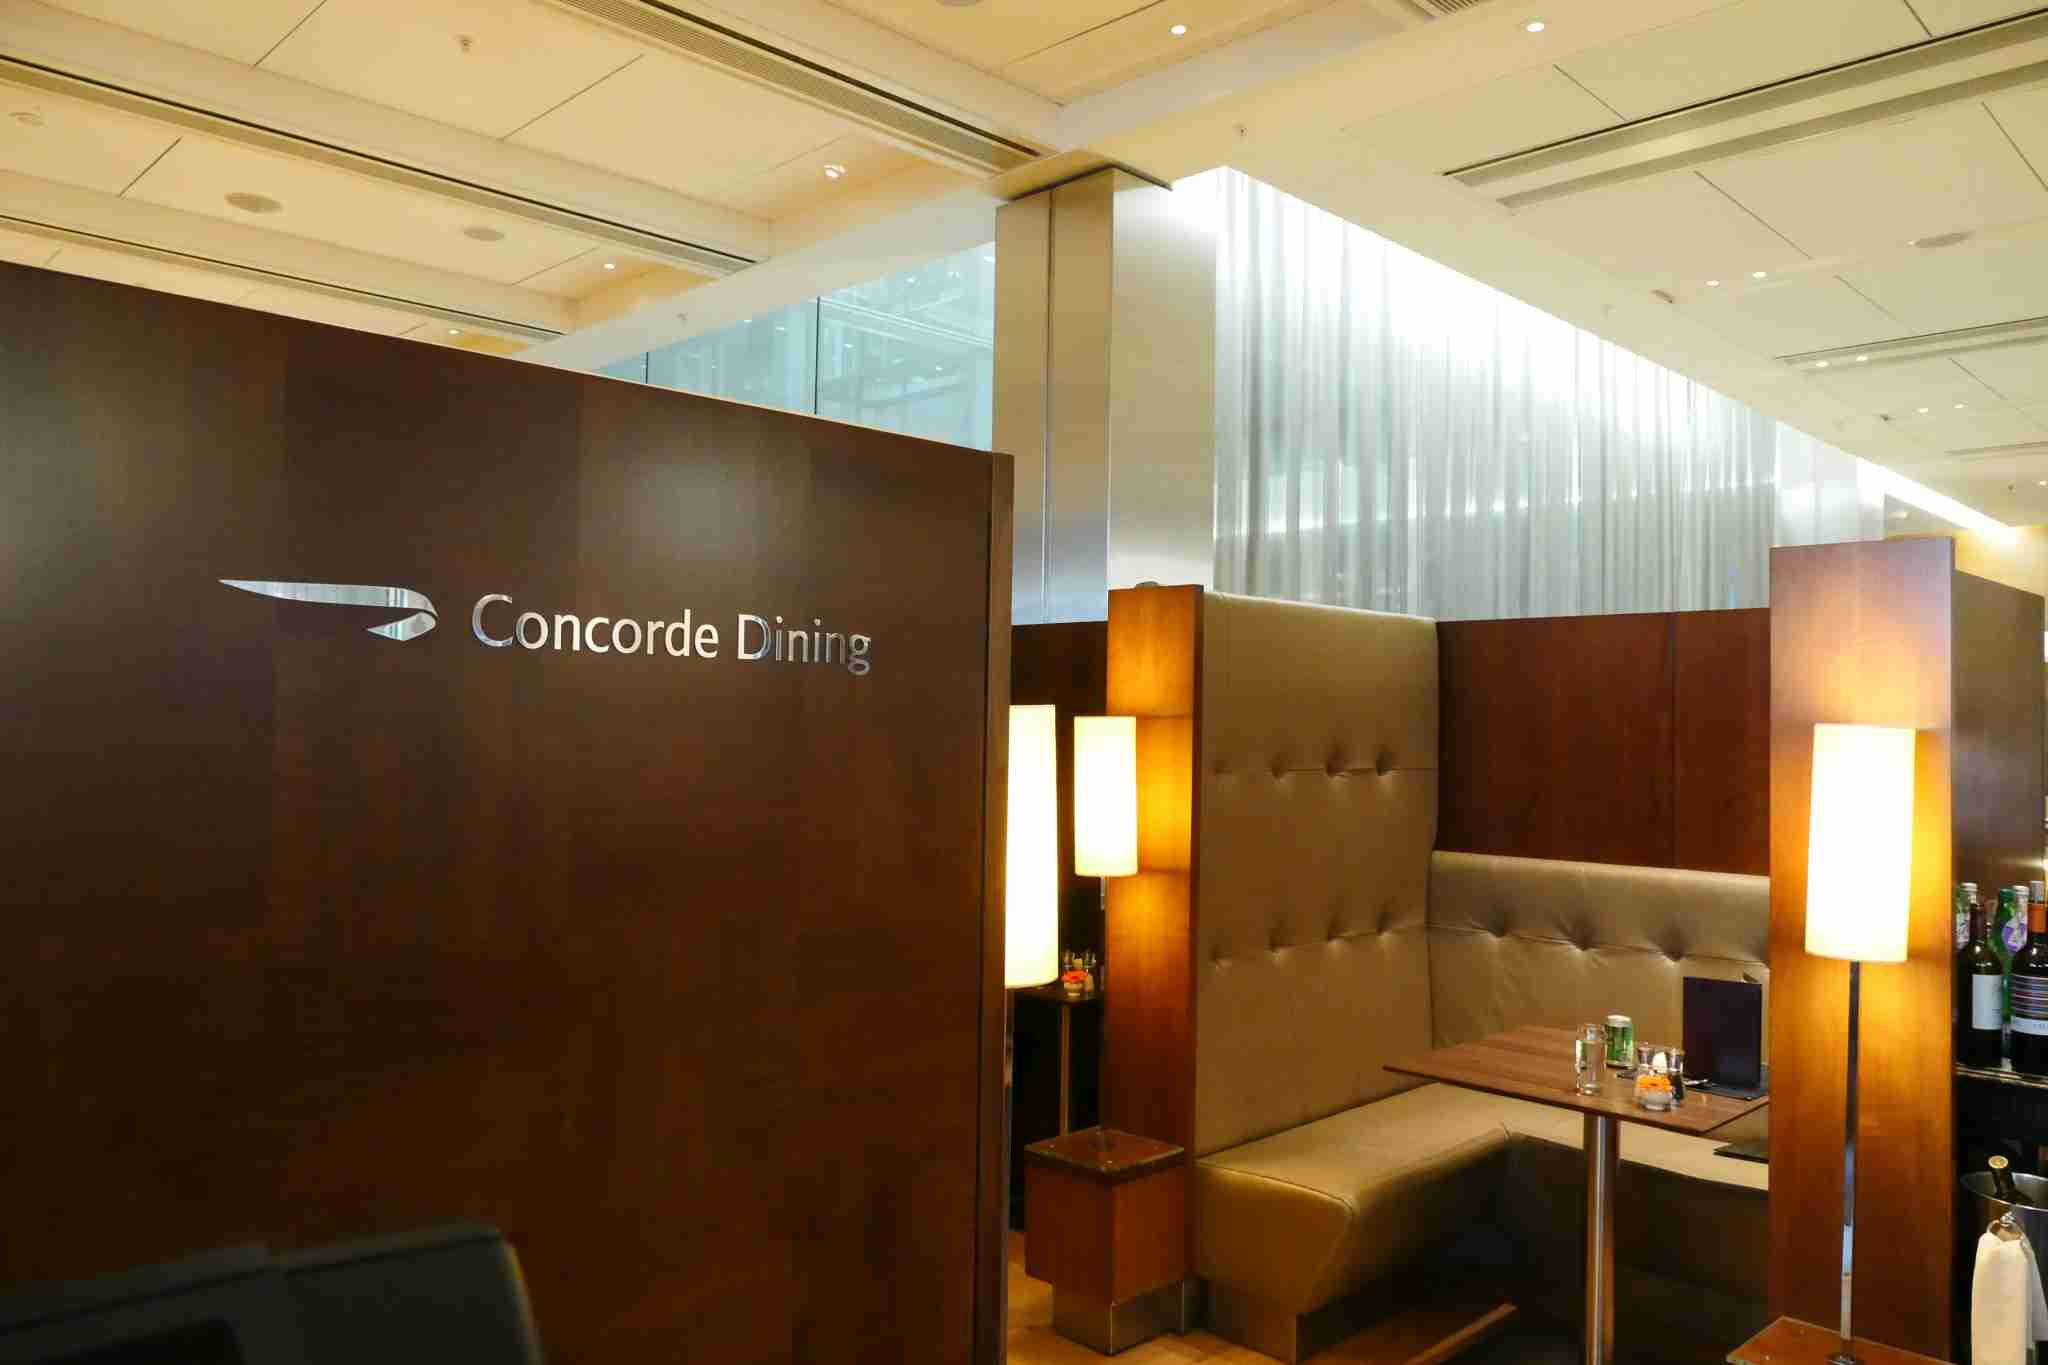 The dedicated dining area in the Concorde Room has tables which can seat two comfortably - any more persons and you